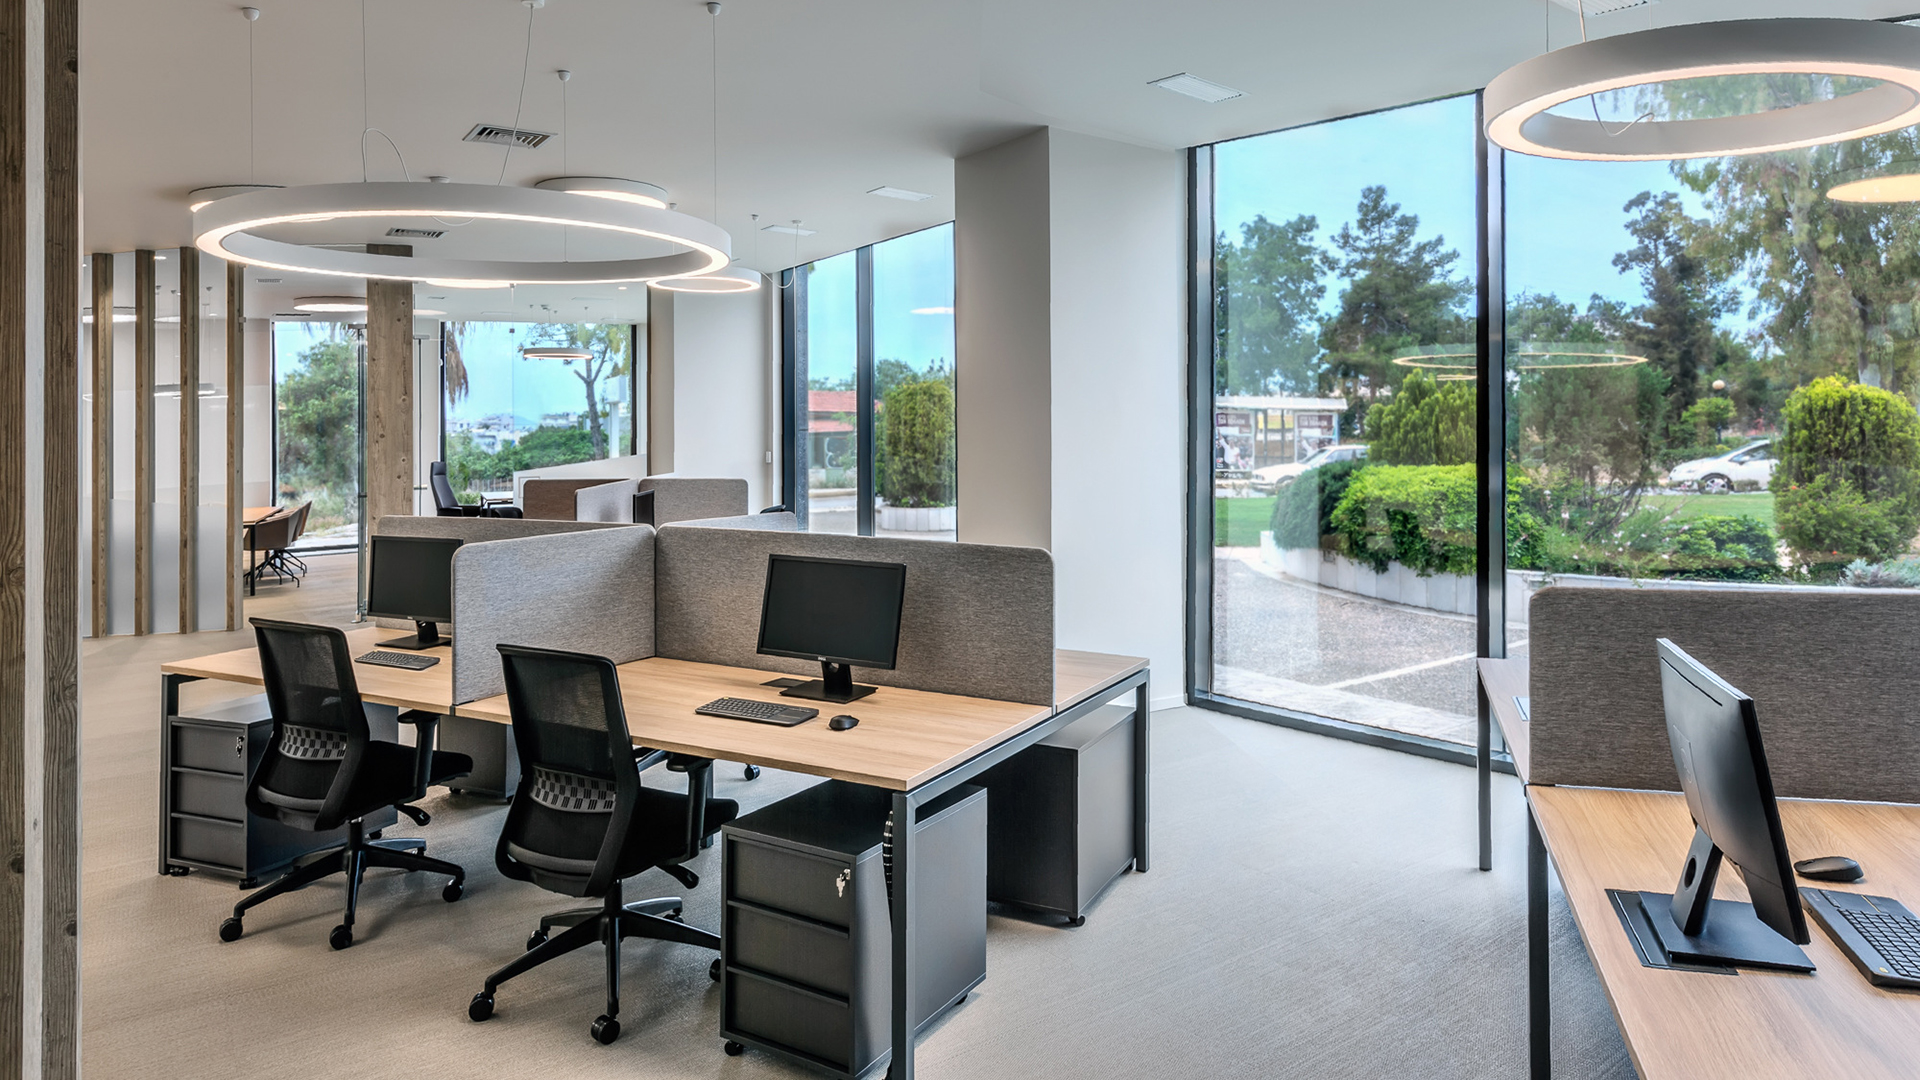 Office with a garden view. Virtual background to use on Zoom, Microsoft Teams, Skype, Google Meet, WebEx or any other compatible app.